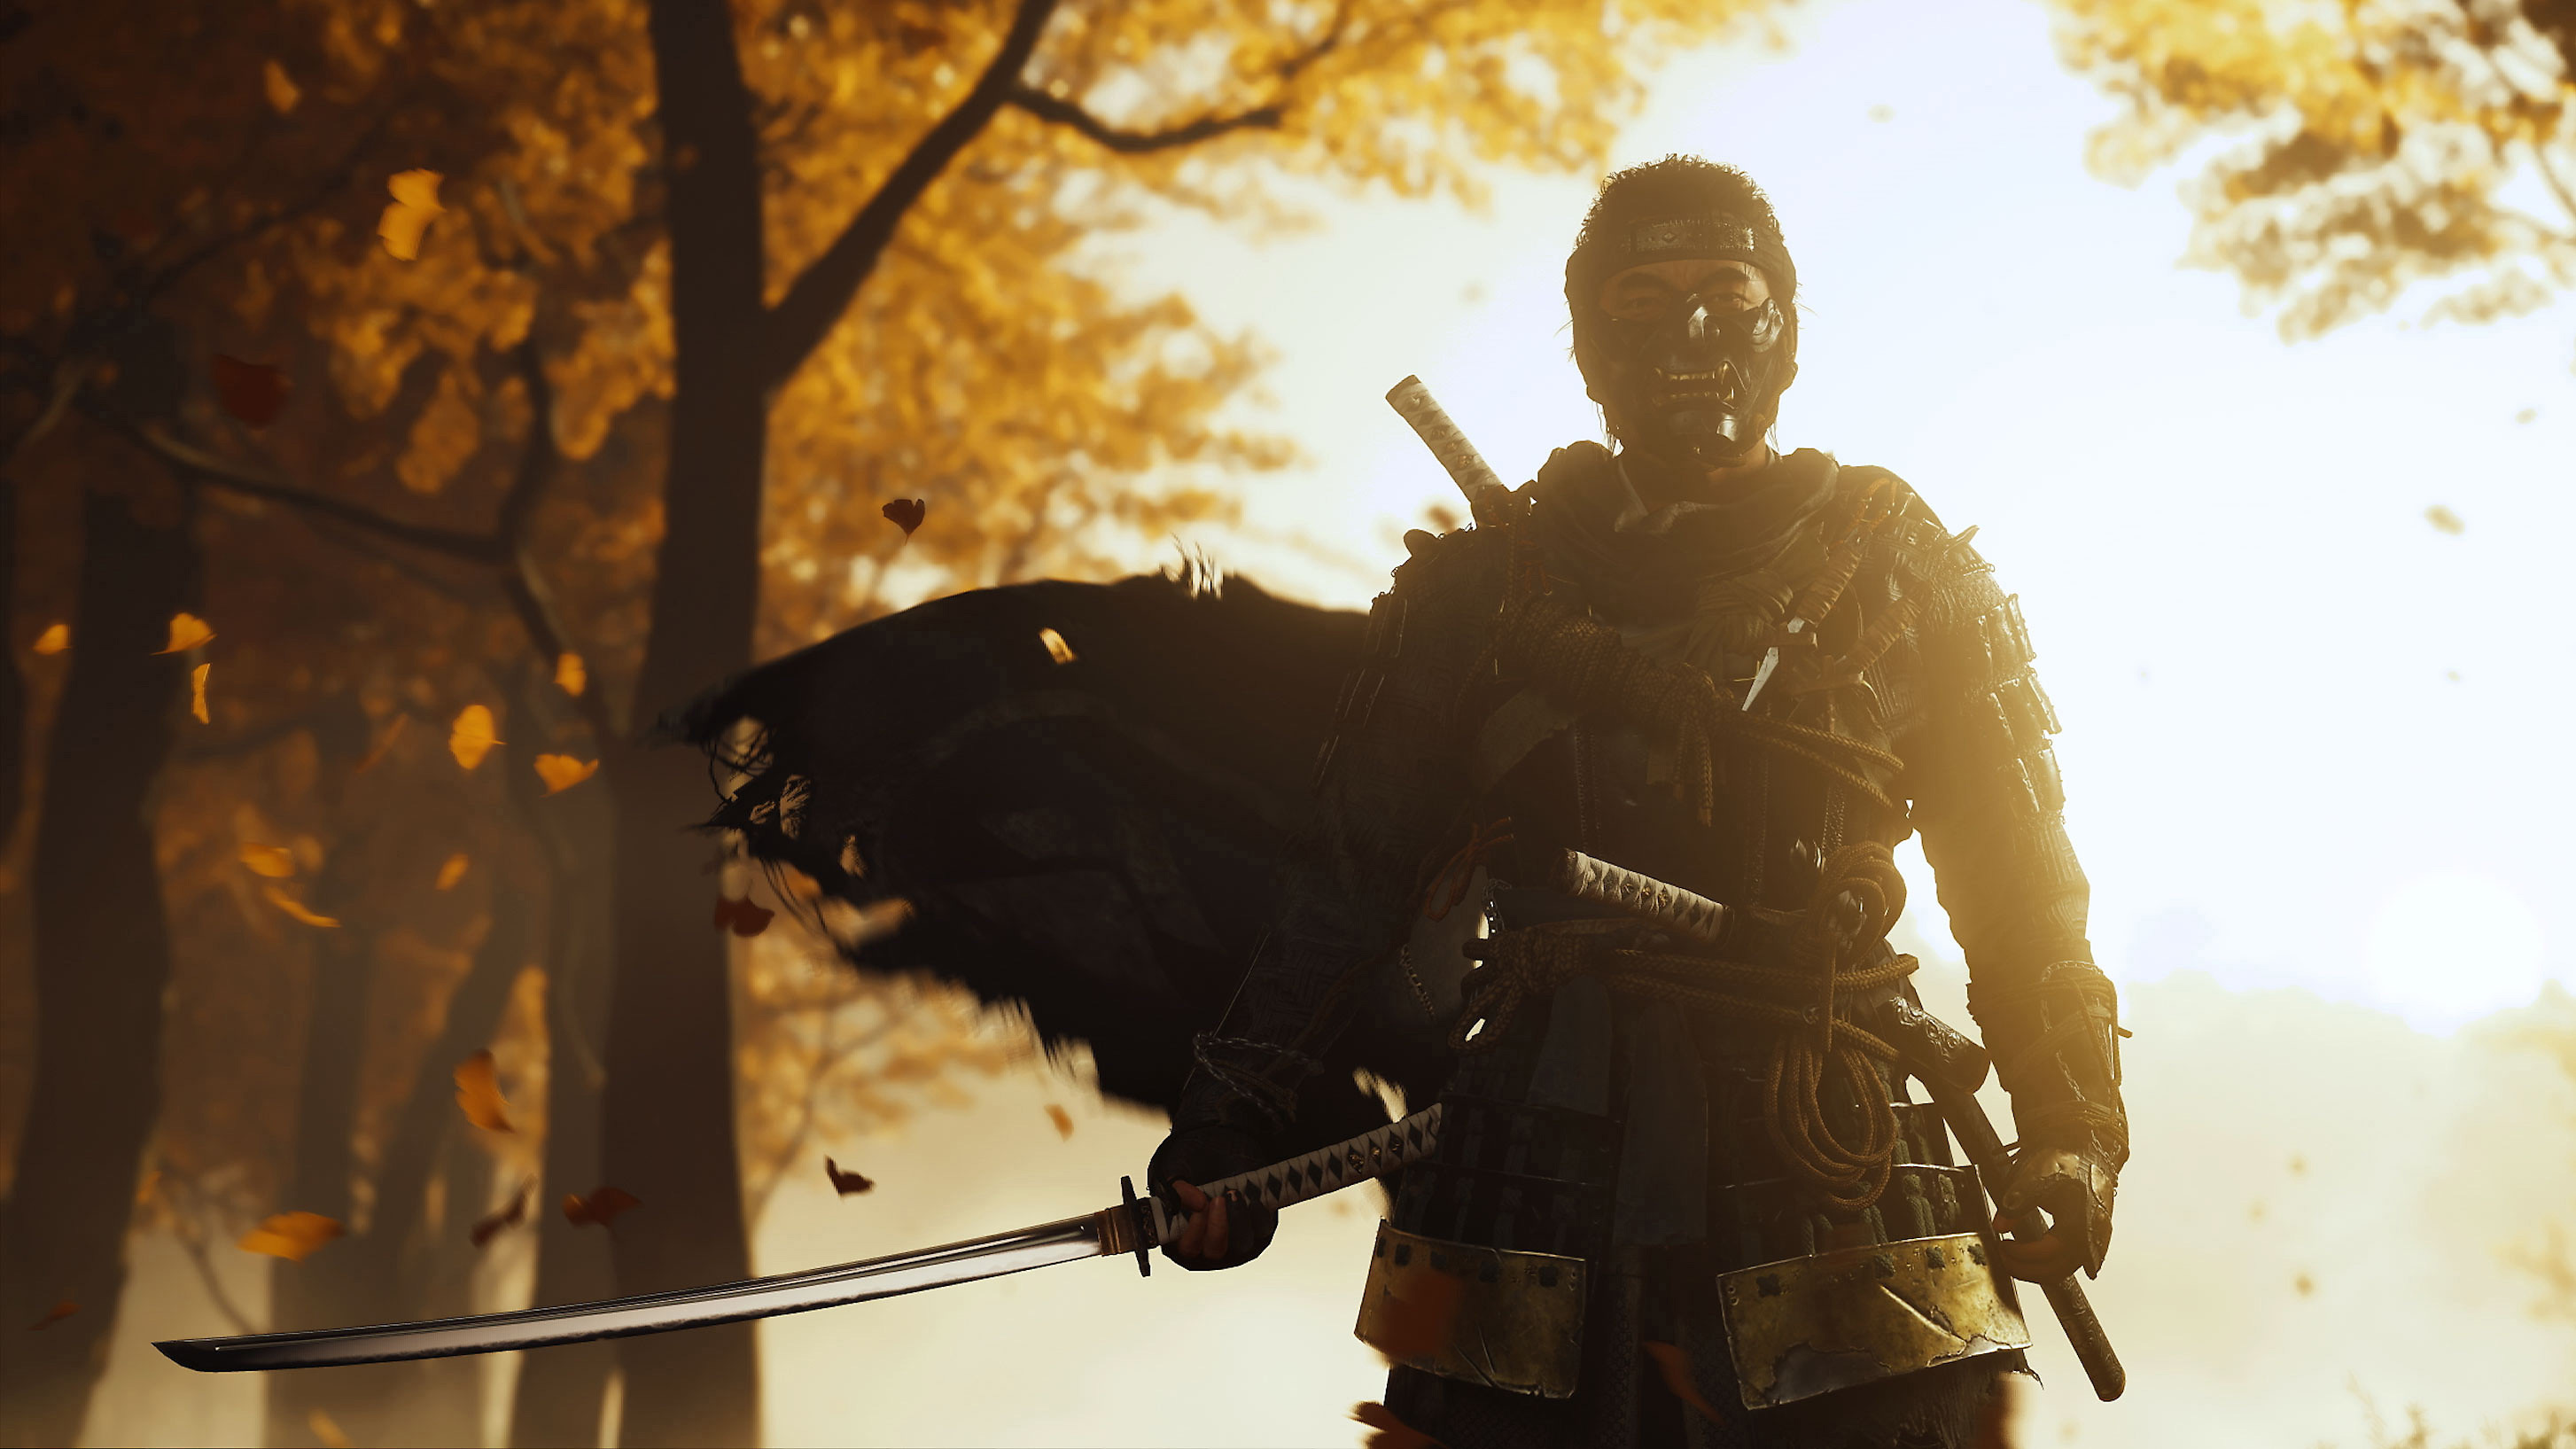 We might get a Ghost of Tsushima movie from John Wick director Chad Stahelski screenshot